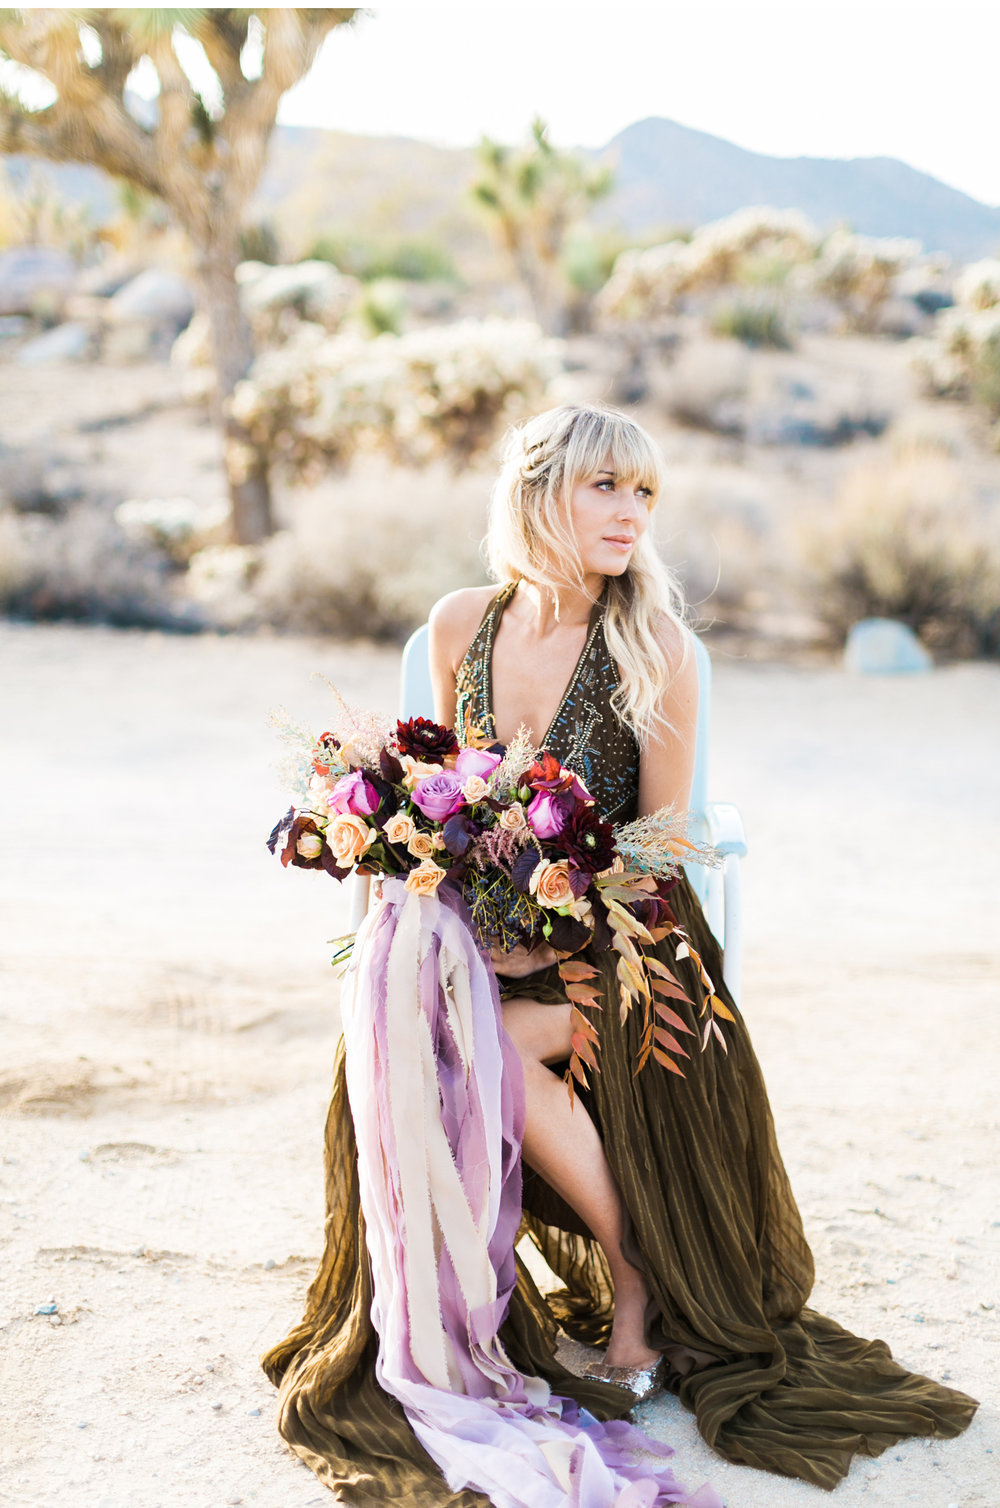 Southern-California-Elopement-Natalie-Schutt-Photography-Joshua-Tree_14.jpg